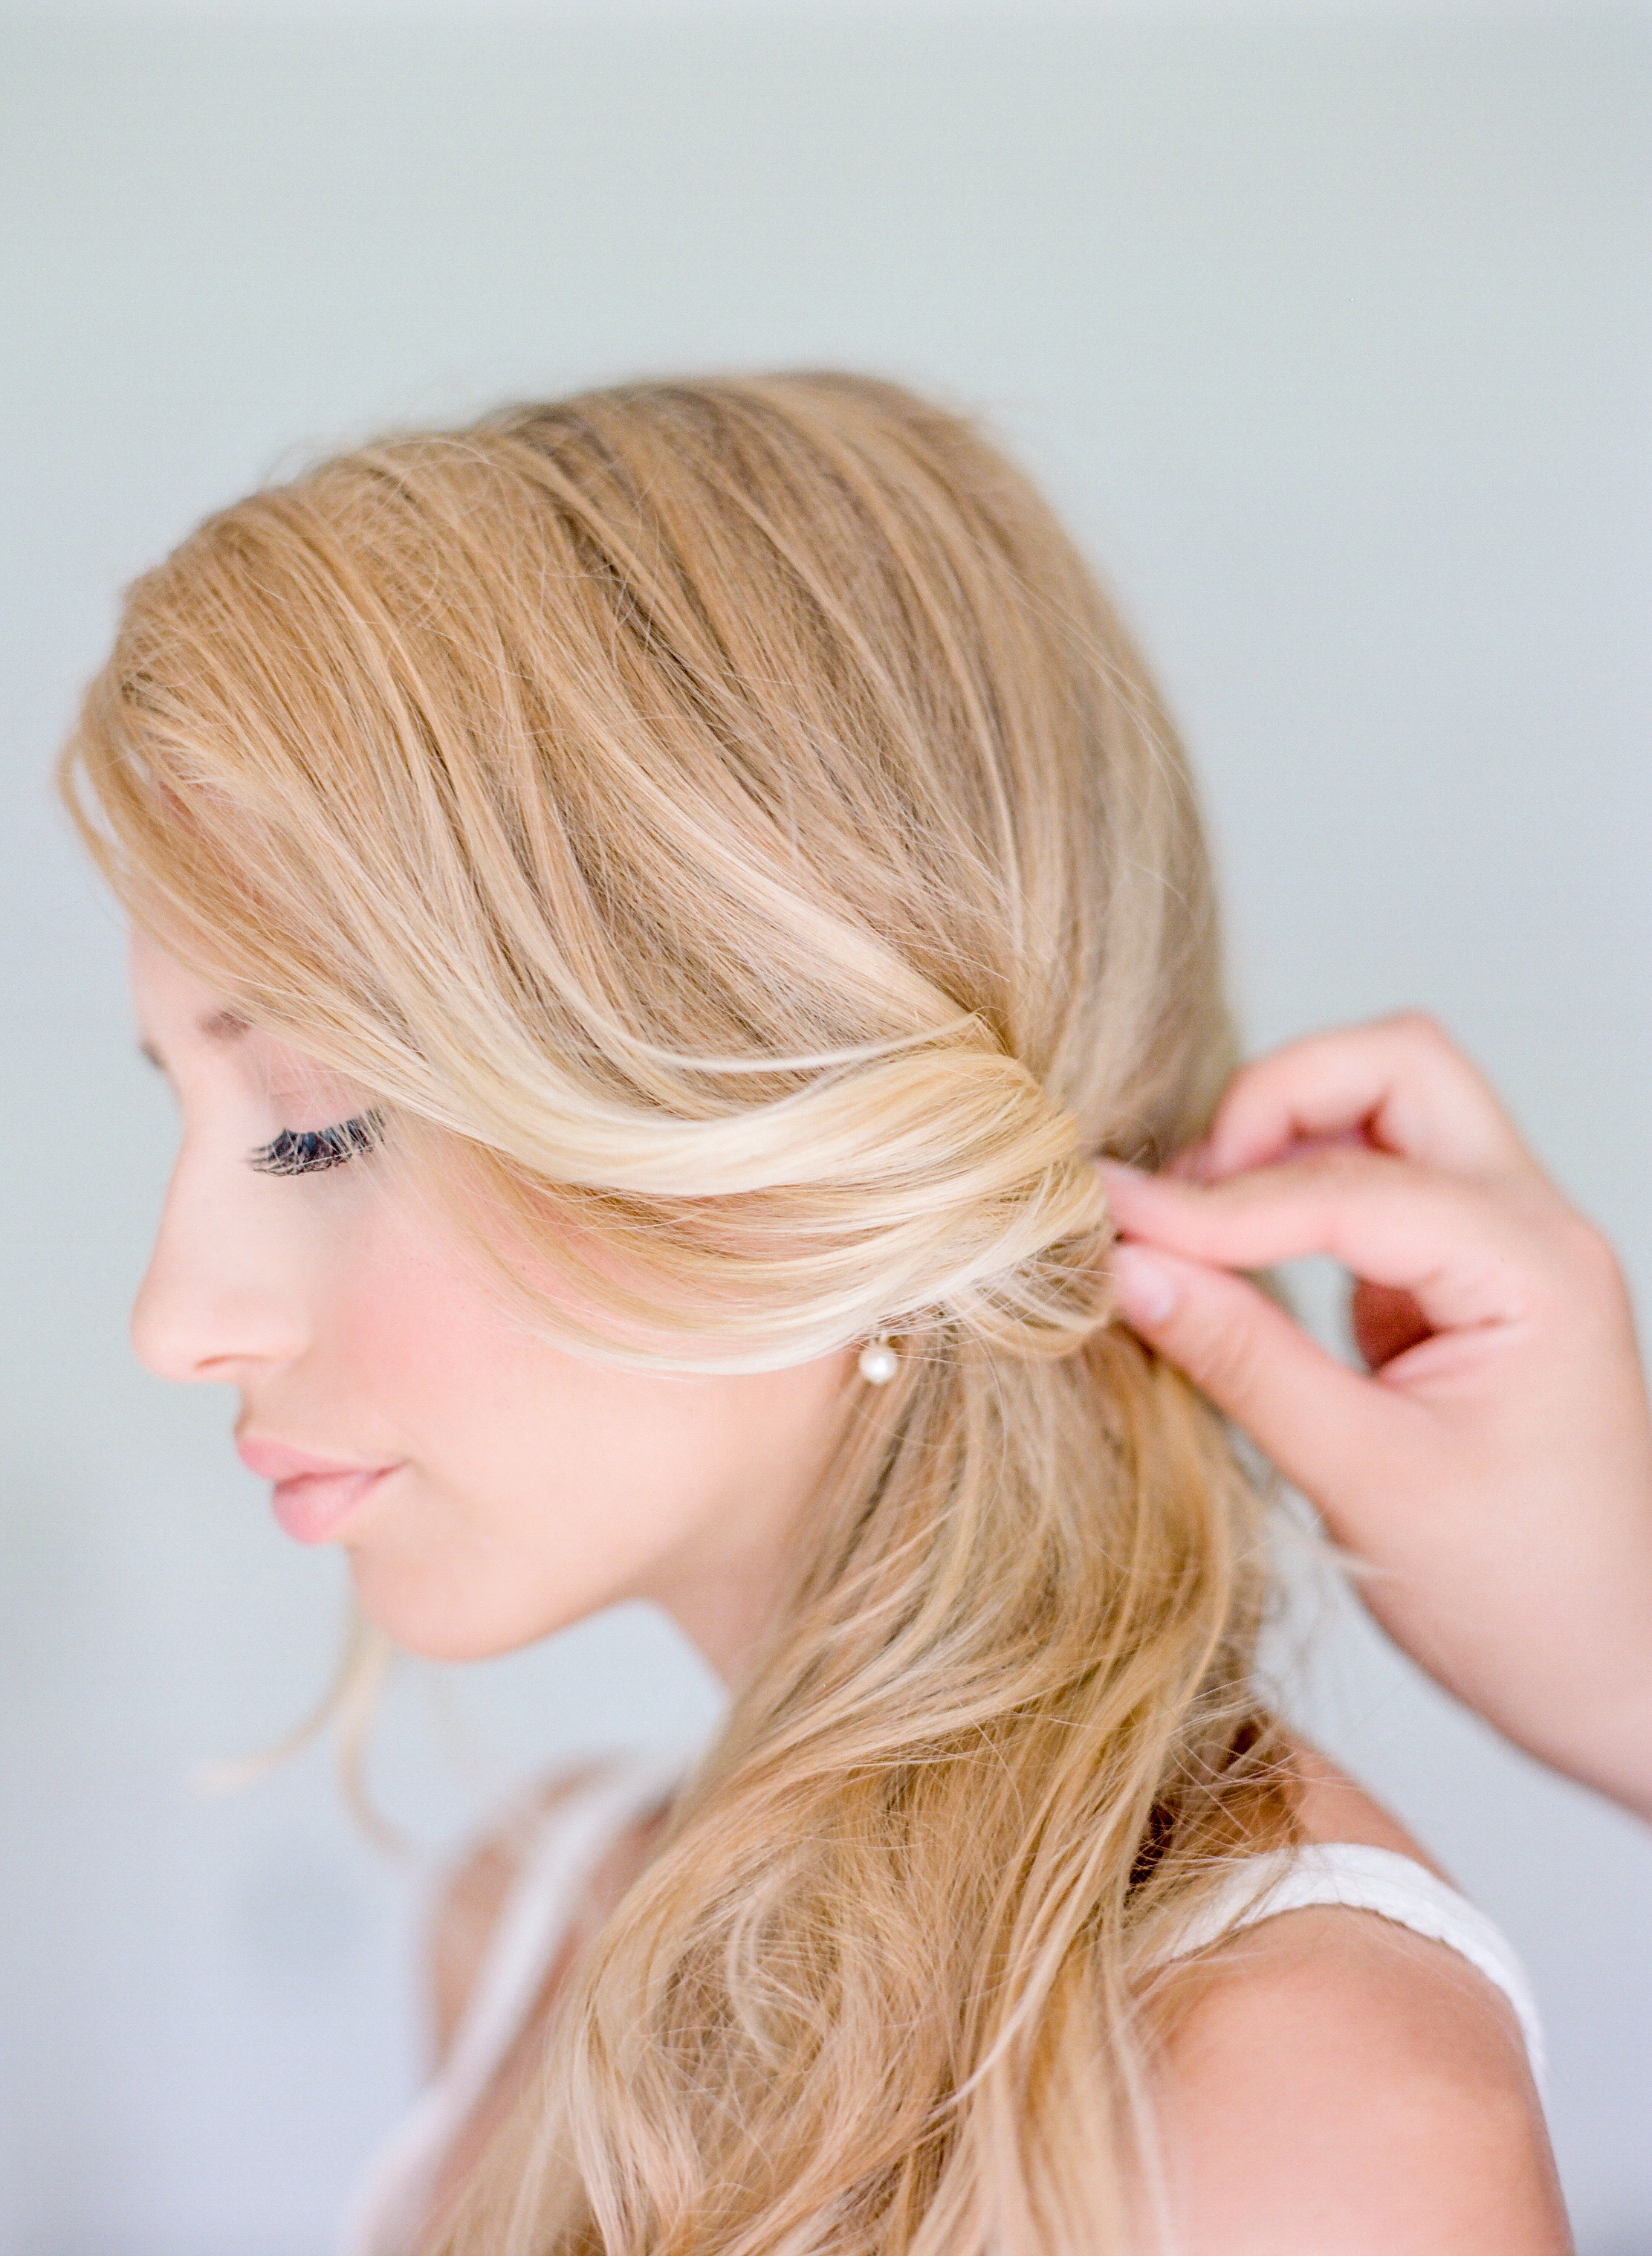 STEP THREE | Pin the bottom twisted pieces of hair loosely